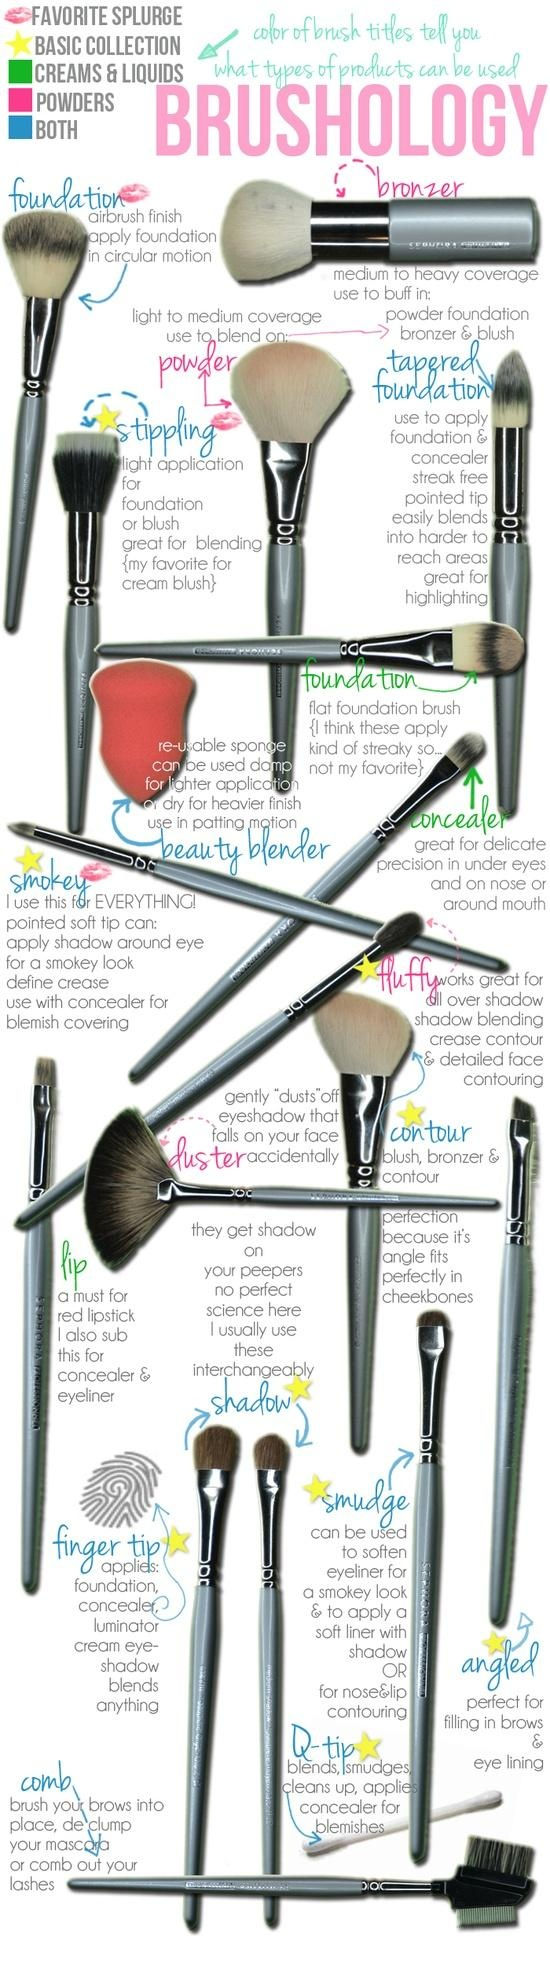 best all about face images on pinterest beauty tips make up